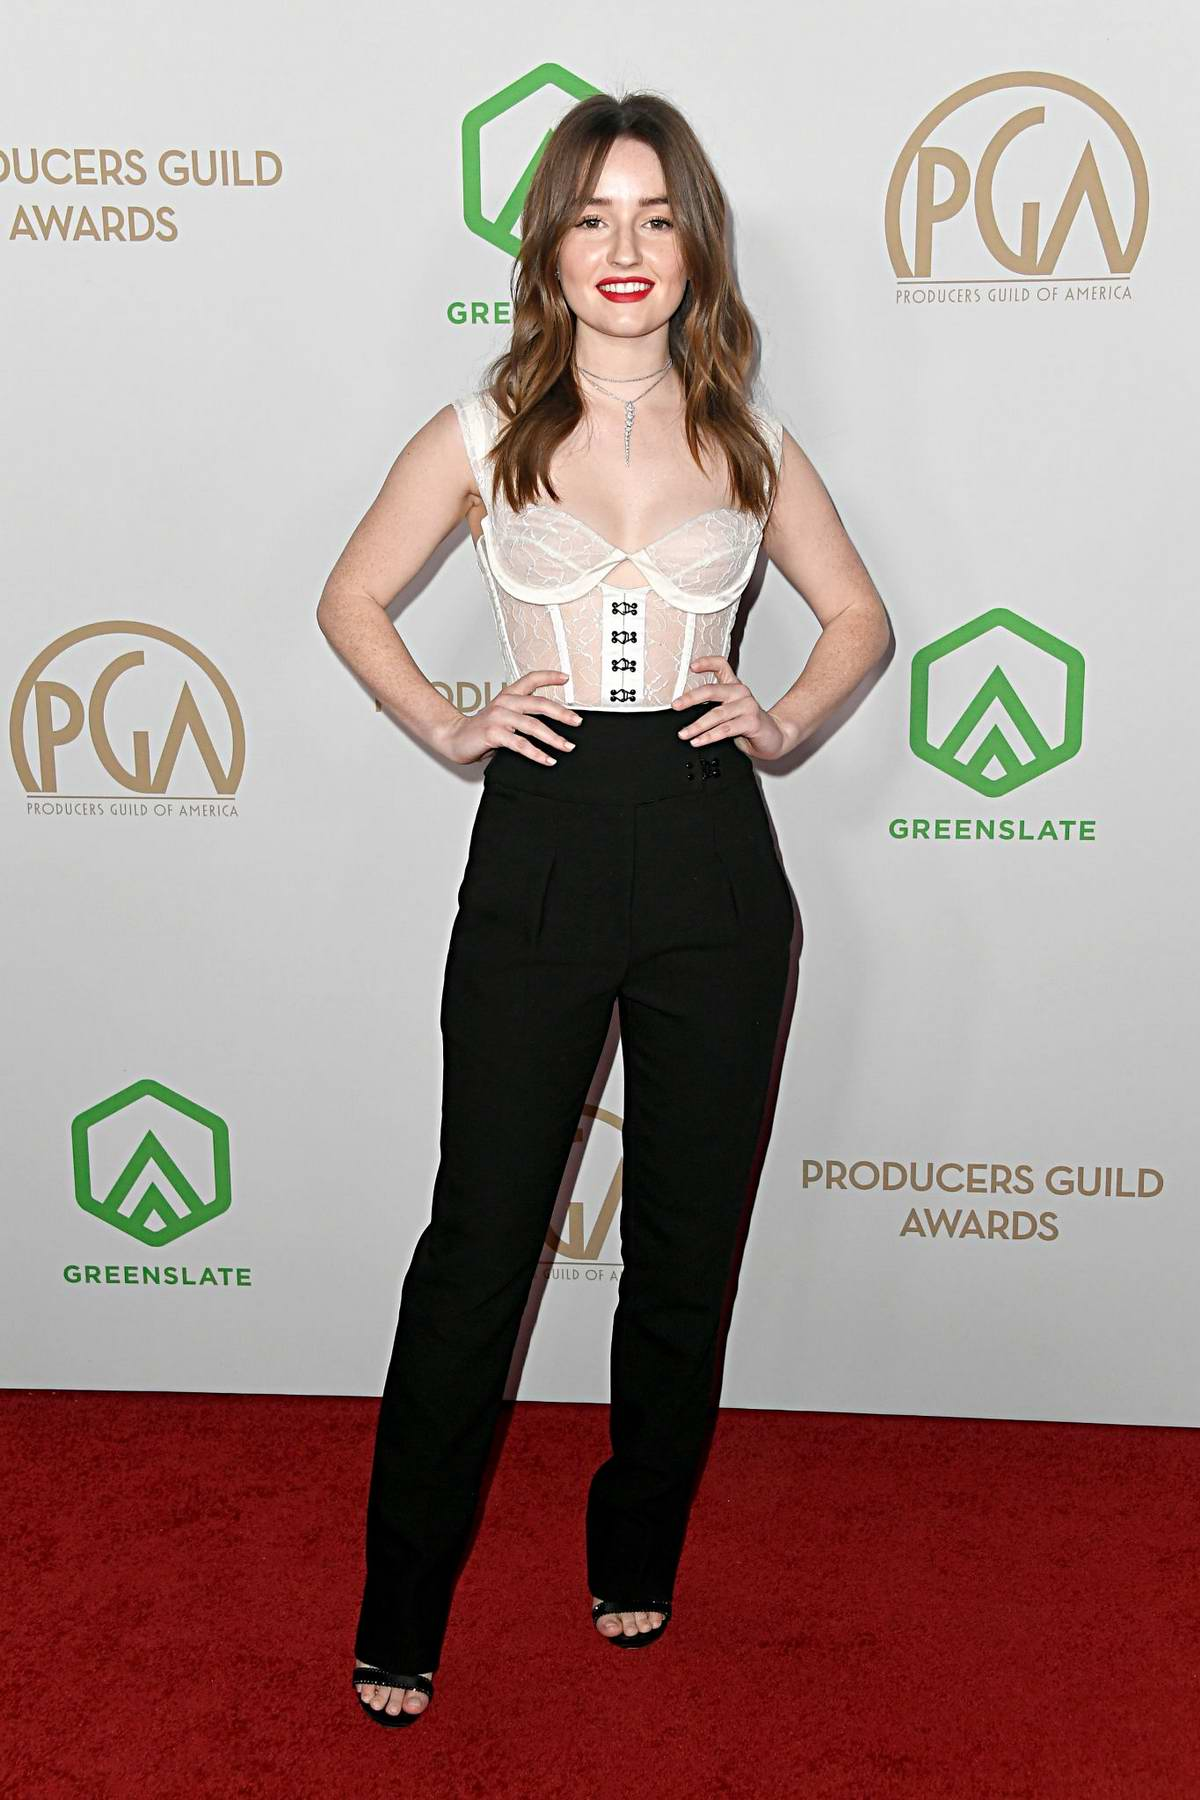 Kaitlyn Dever attends the 31st Annual Producers Guild Awards in Los Angeles